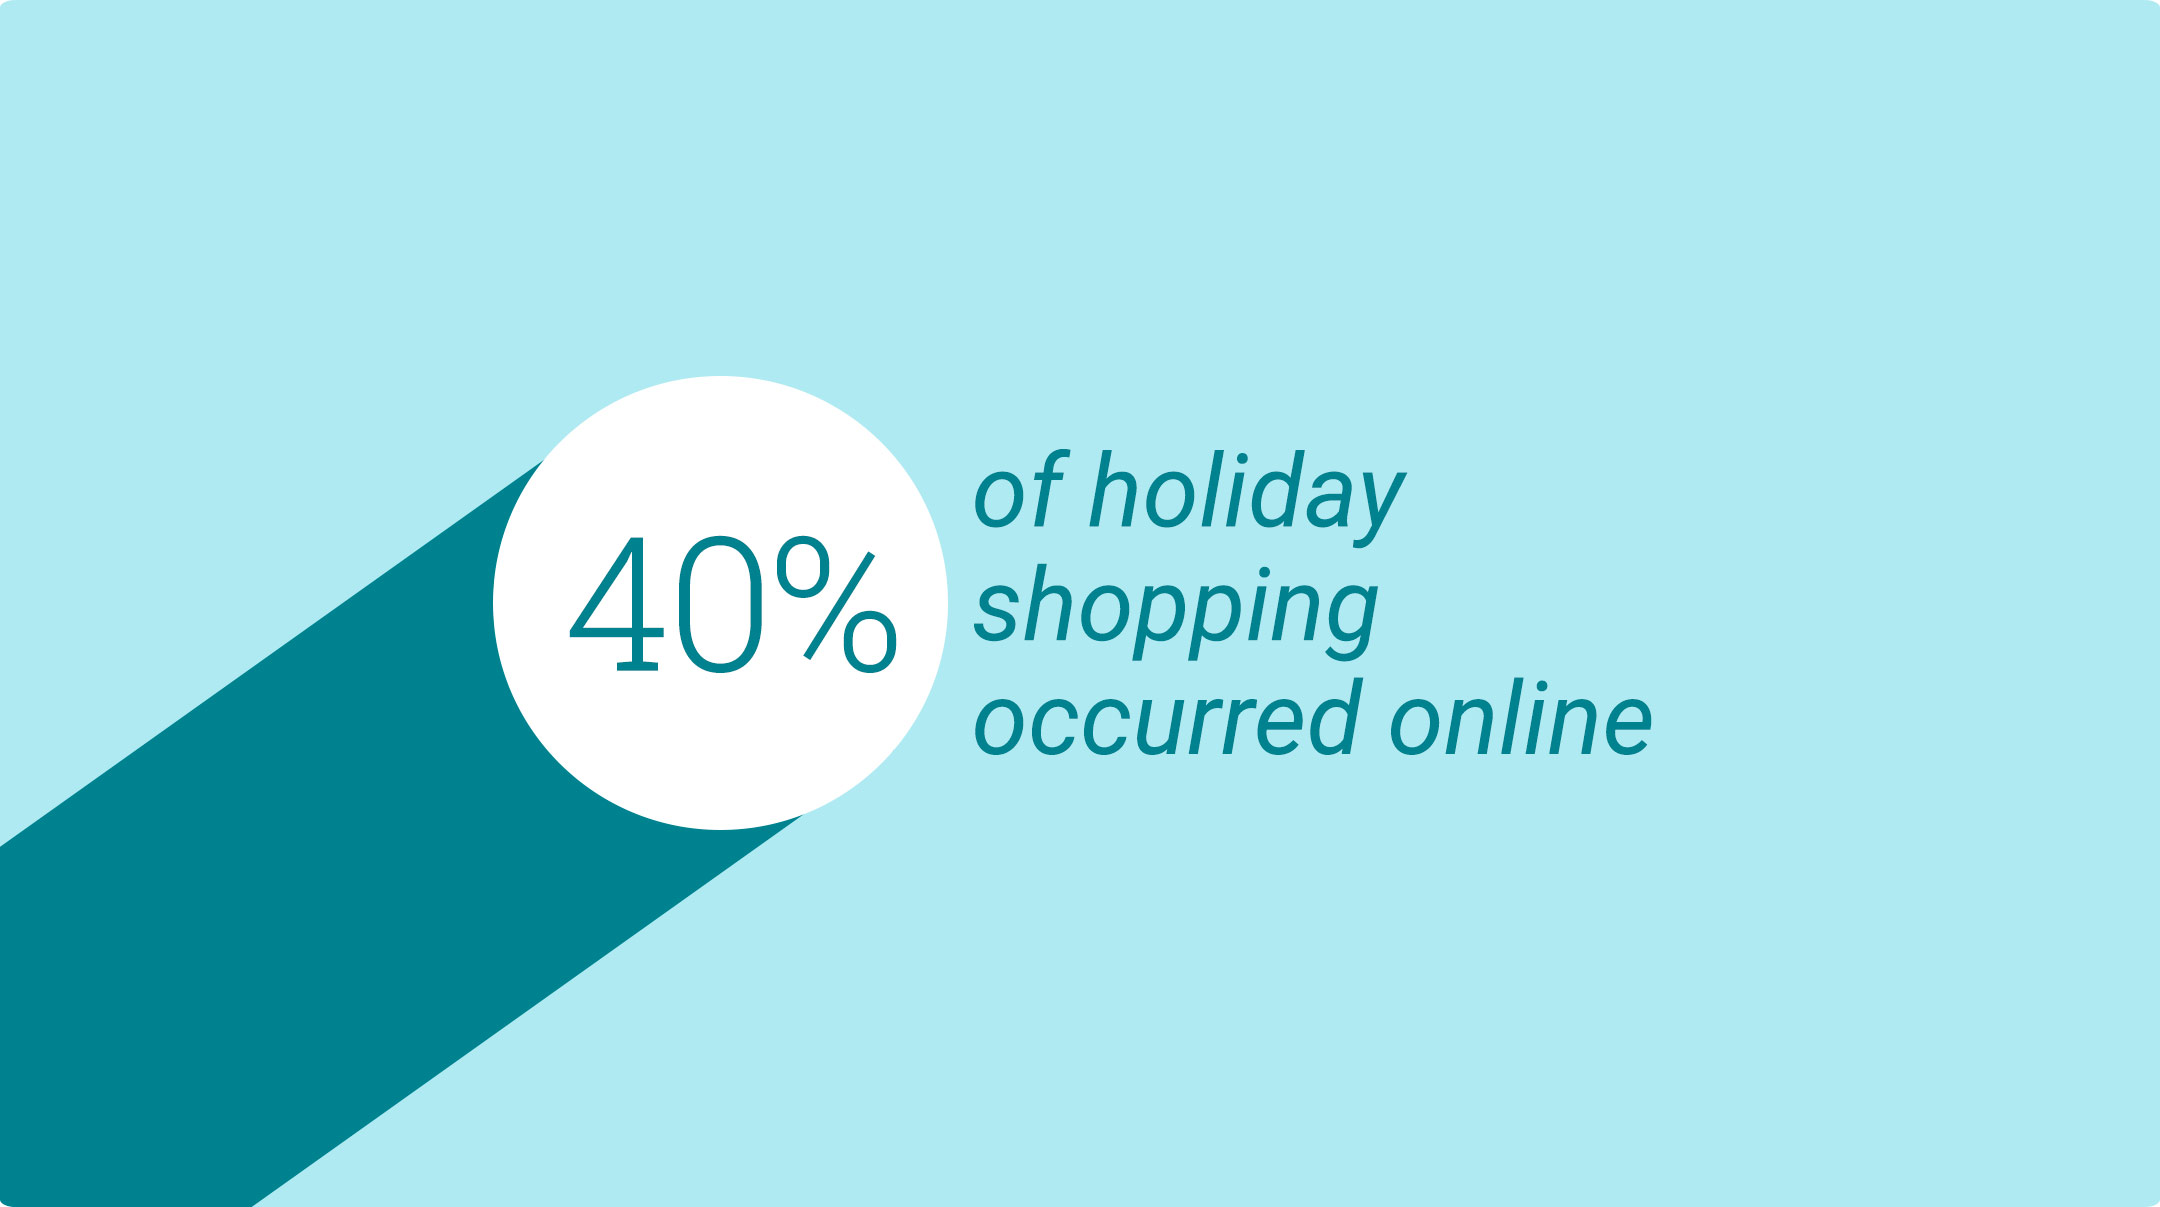 5 Holiday Shopping Trends to Watch in 2015